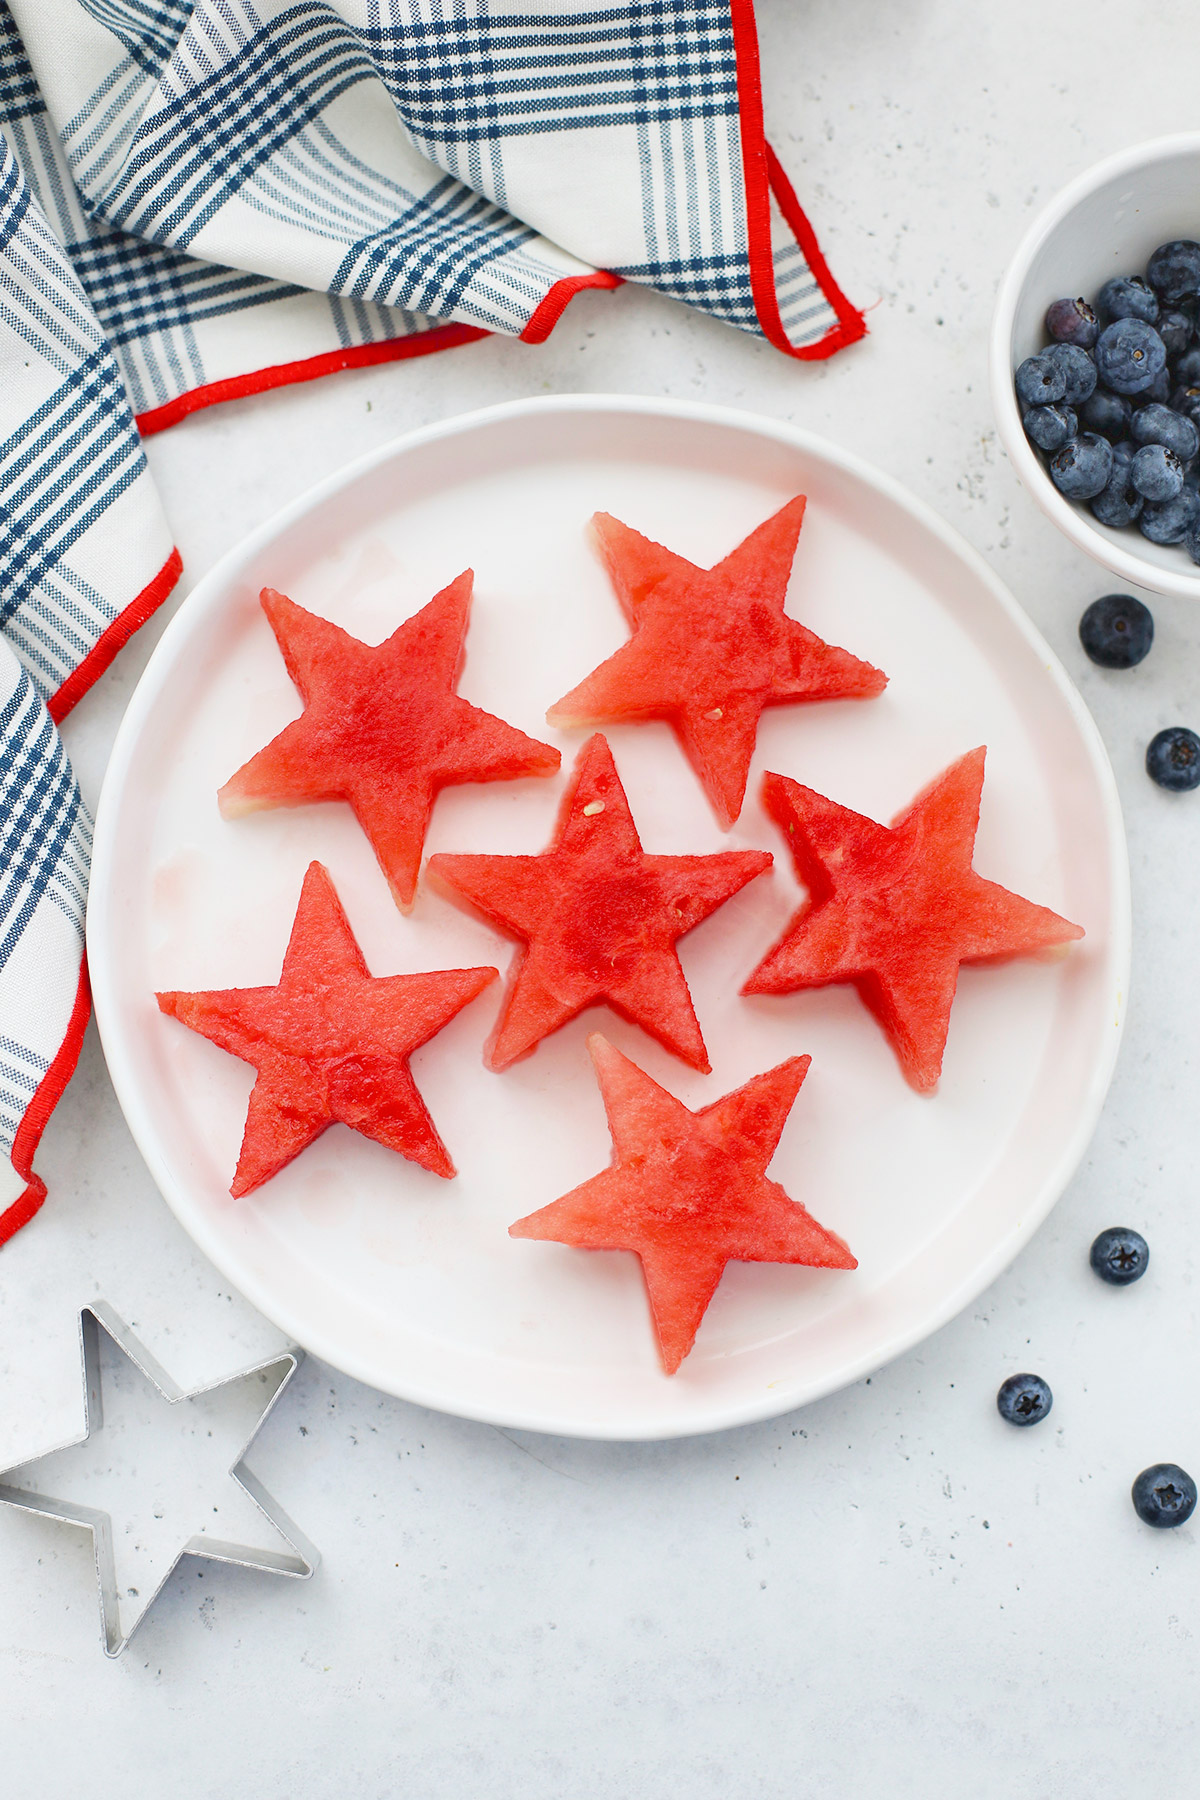 Watermelon Star Sparklers + Lime Yogurt Dip from One Lovely Life